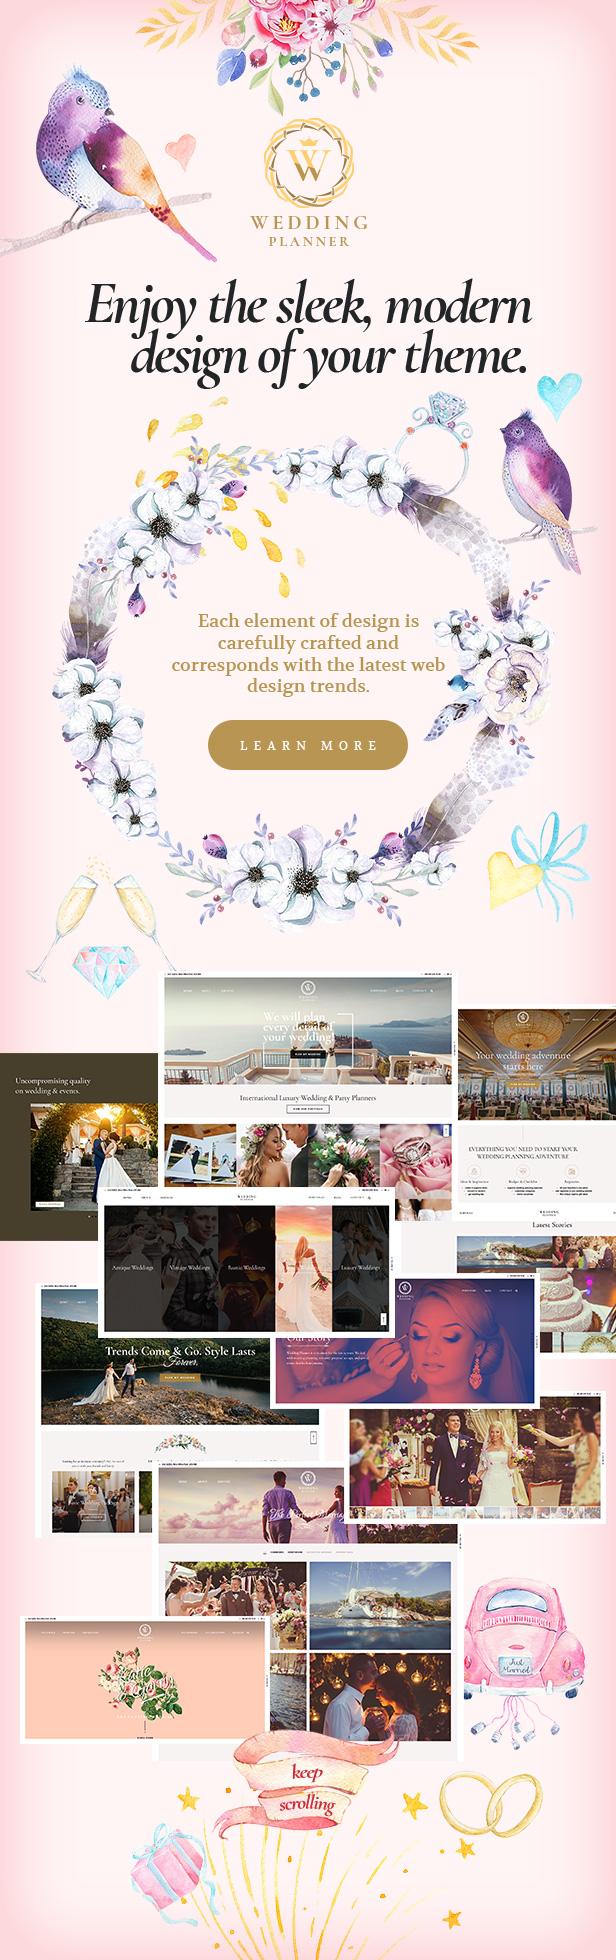 Wedding Planner - Responsive WordPress Theme - 3